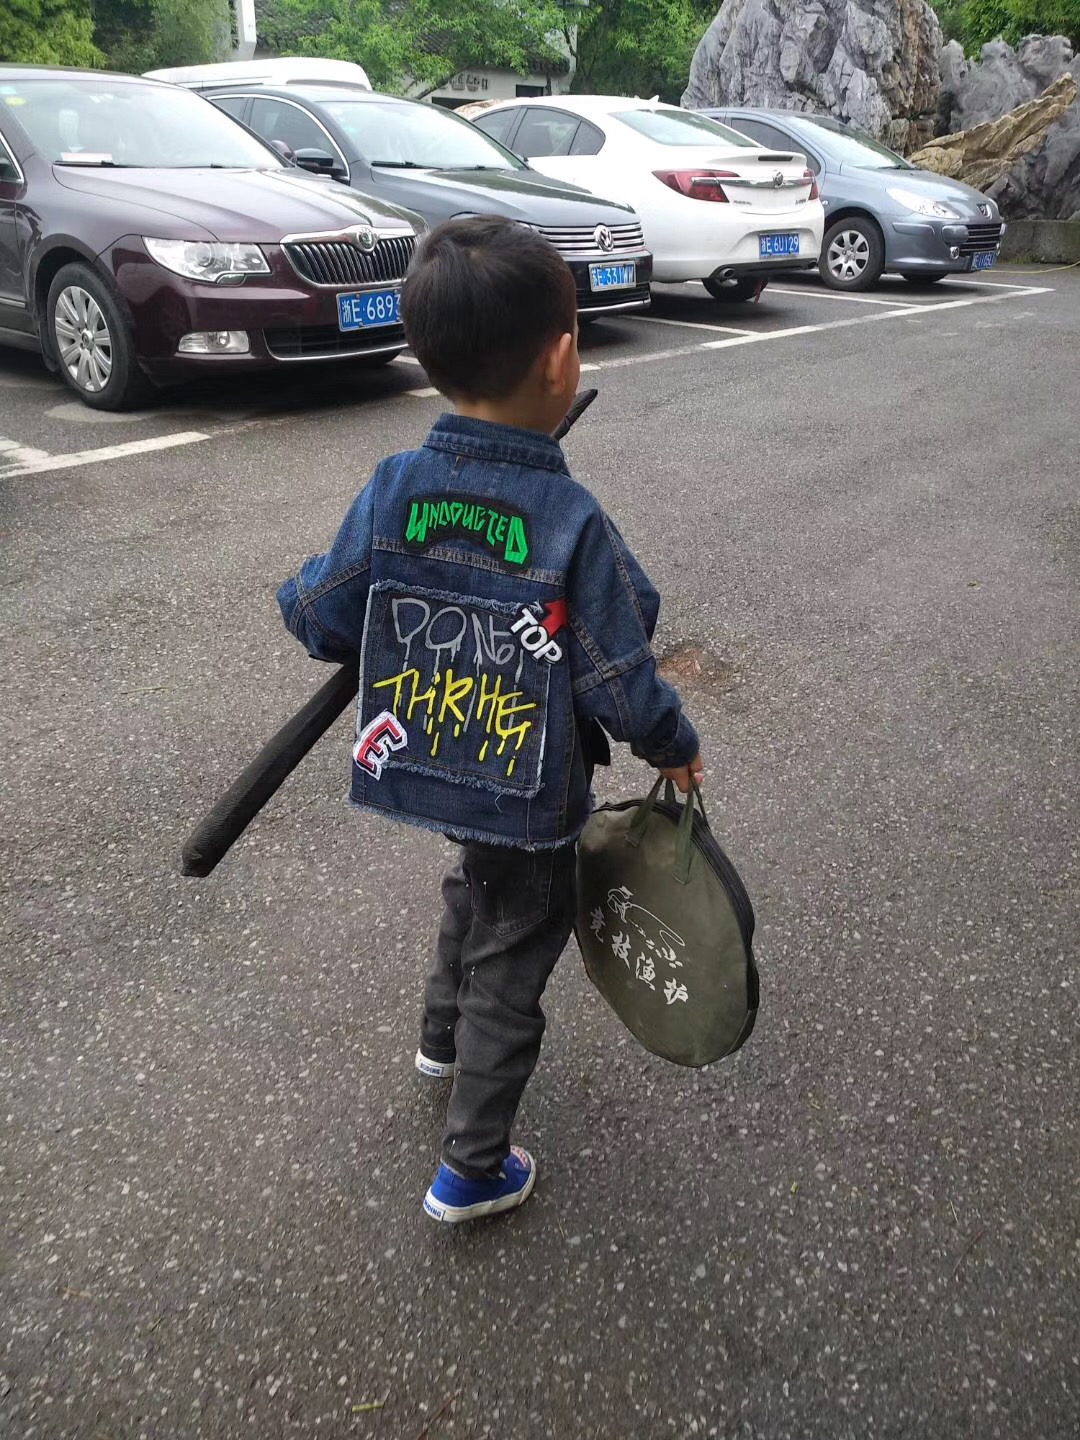 Zhuangzi childrens wear options Live Room options message number order